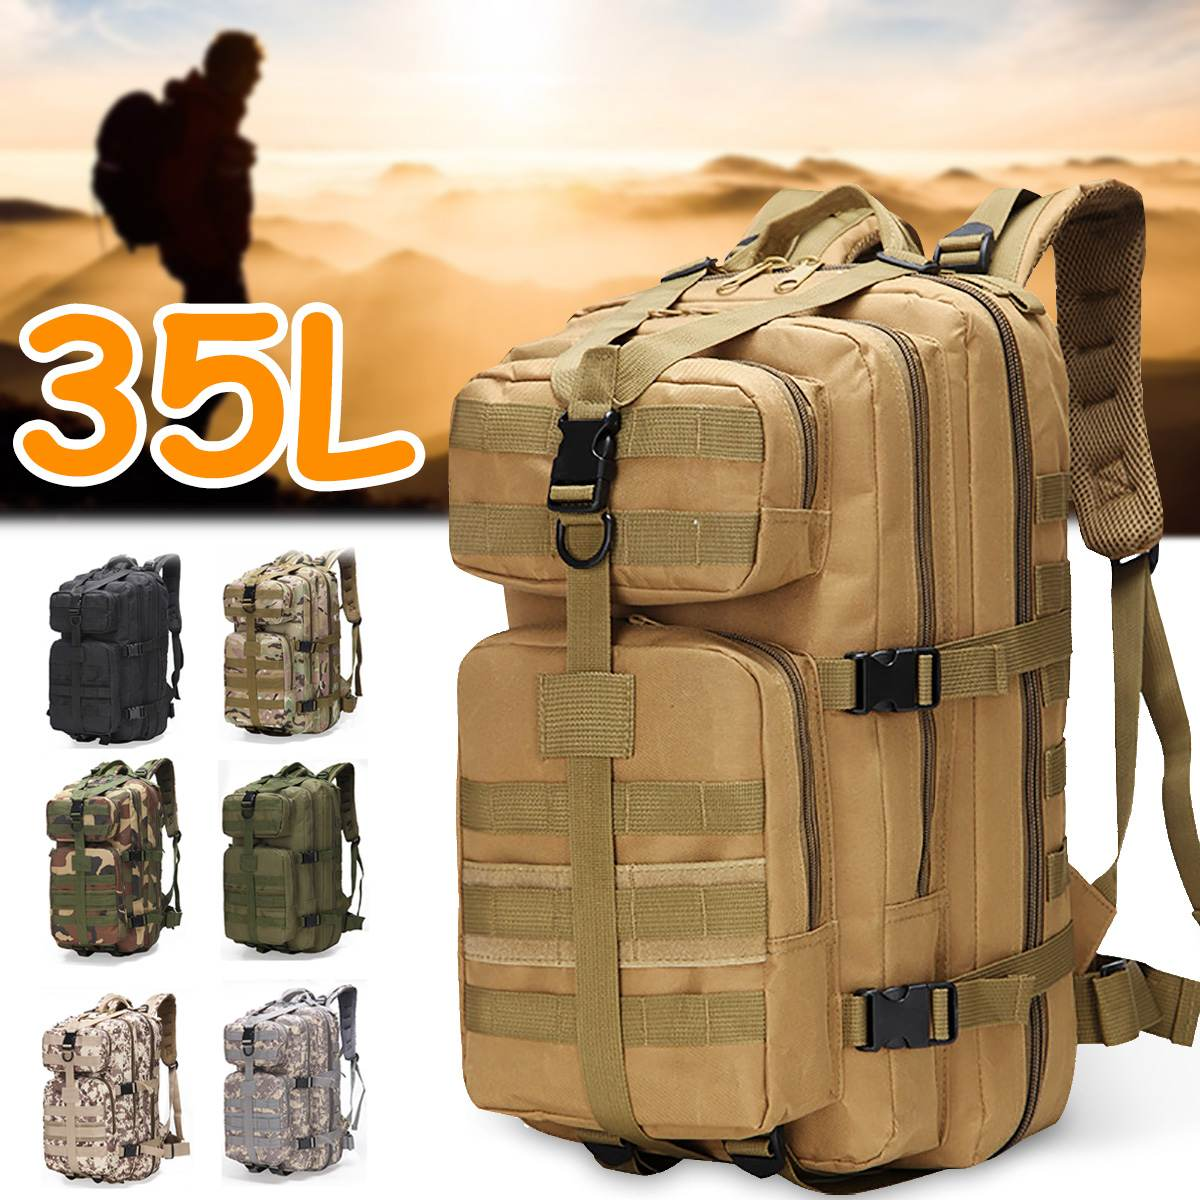 Military Tactical Assault Backpack 35L Waterproof Outdoor Bag Pack Army Rucksack Large Capacity Outdoor Hiking Camping Backpacks